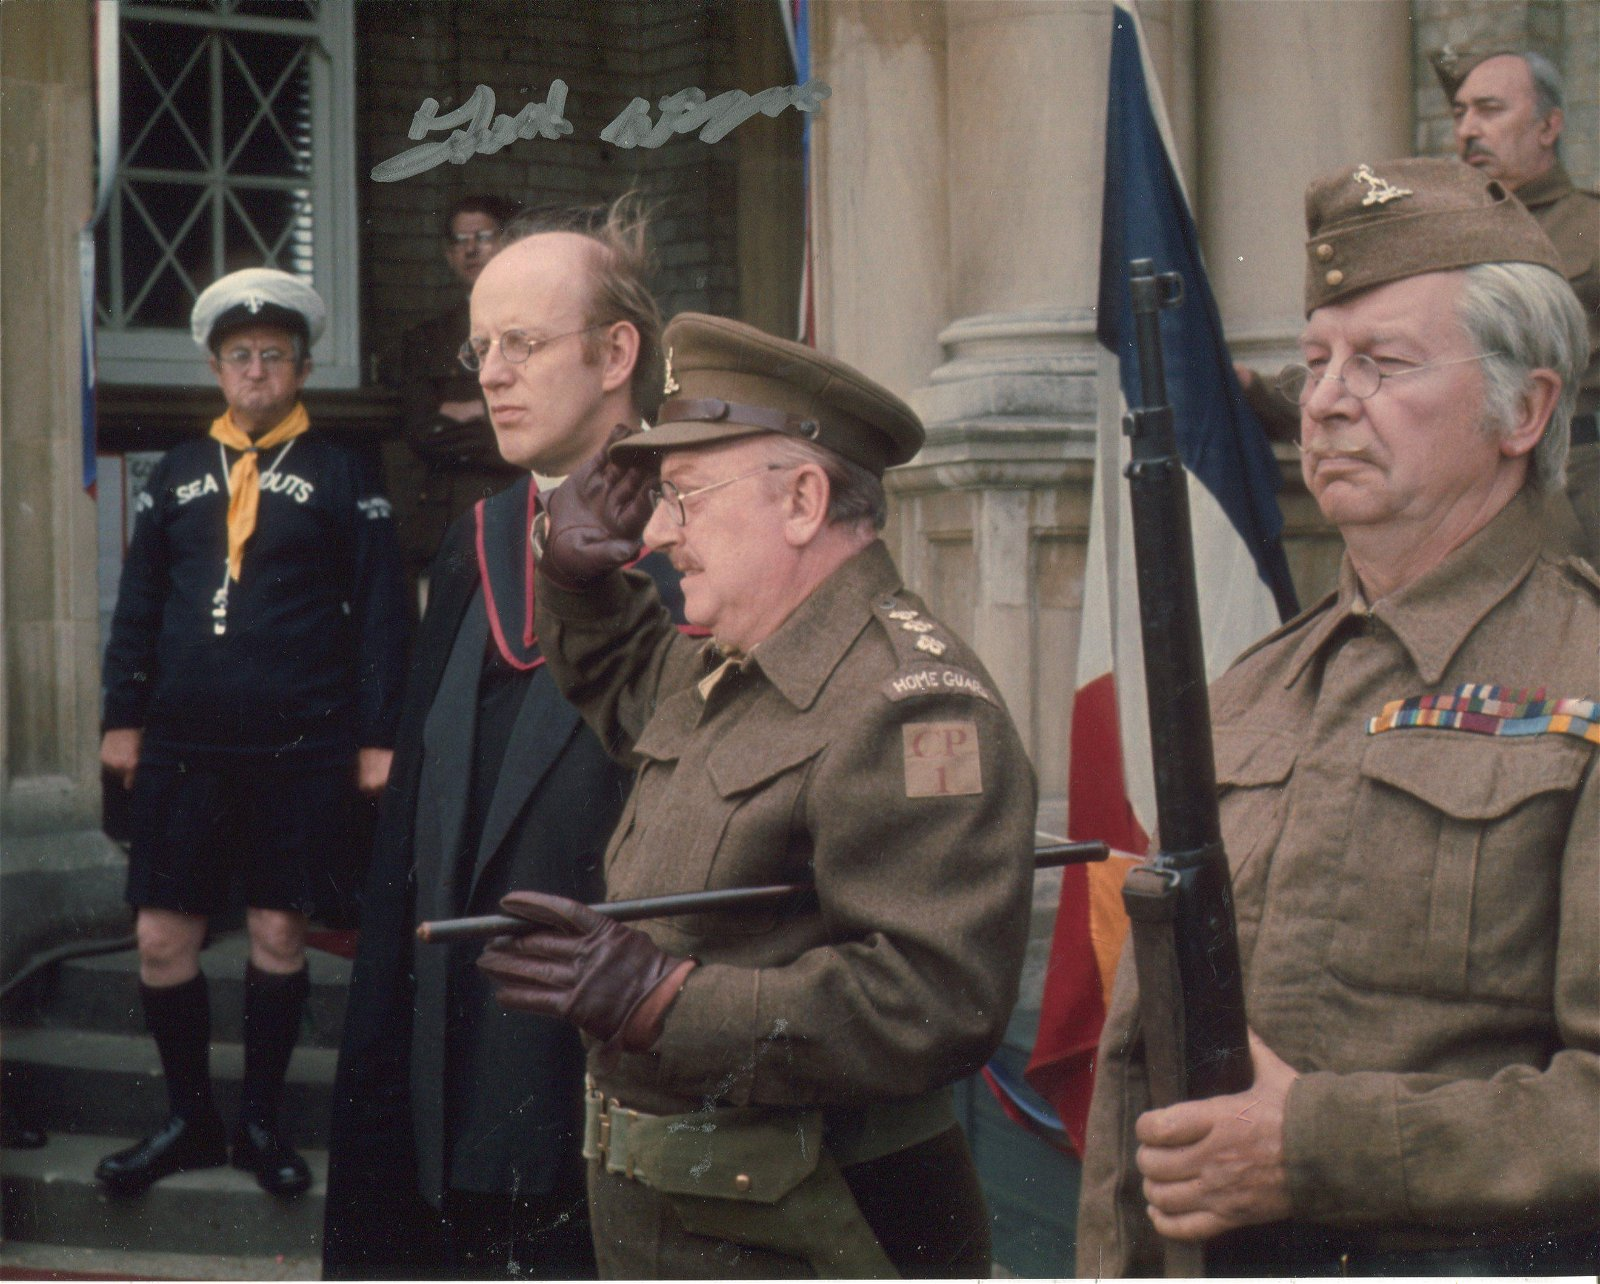 Dads Army. Actor Frank Williams as the Vicar signed